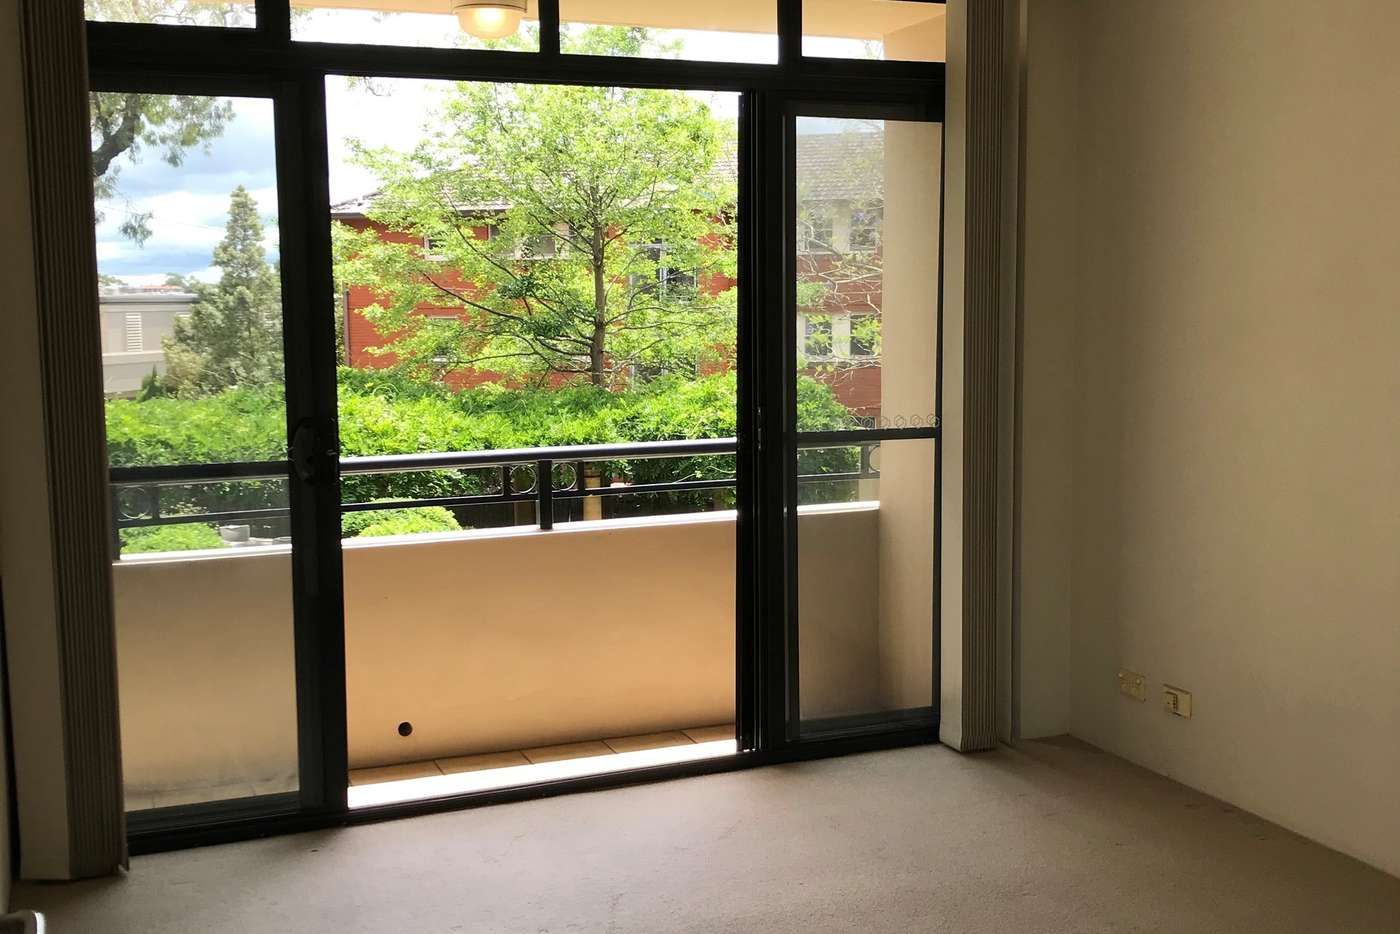 Seventh view of Homely apartment listing, 27/232-240 Ben Boyd Road, Cremorne NSW 2090